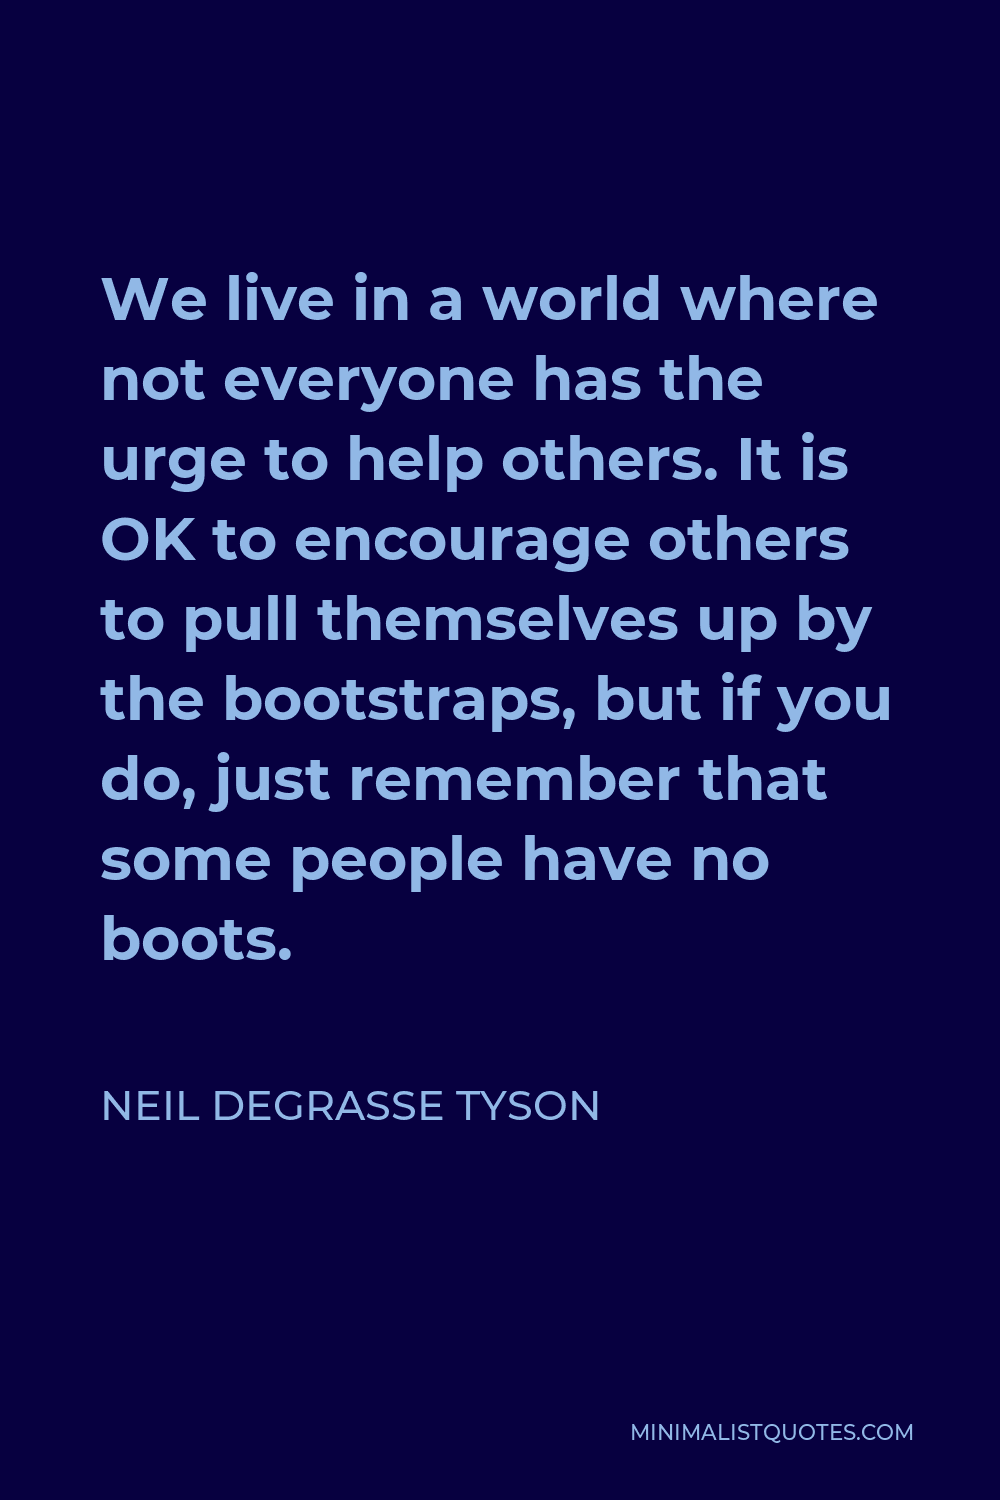 Neil deGrasse Tyson Quote - We live in a world where not everyone has the urge to help others. It is OK to encourage others to pull themselves up by the bootstraps, but if you do, just remember that some people have no boots.